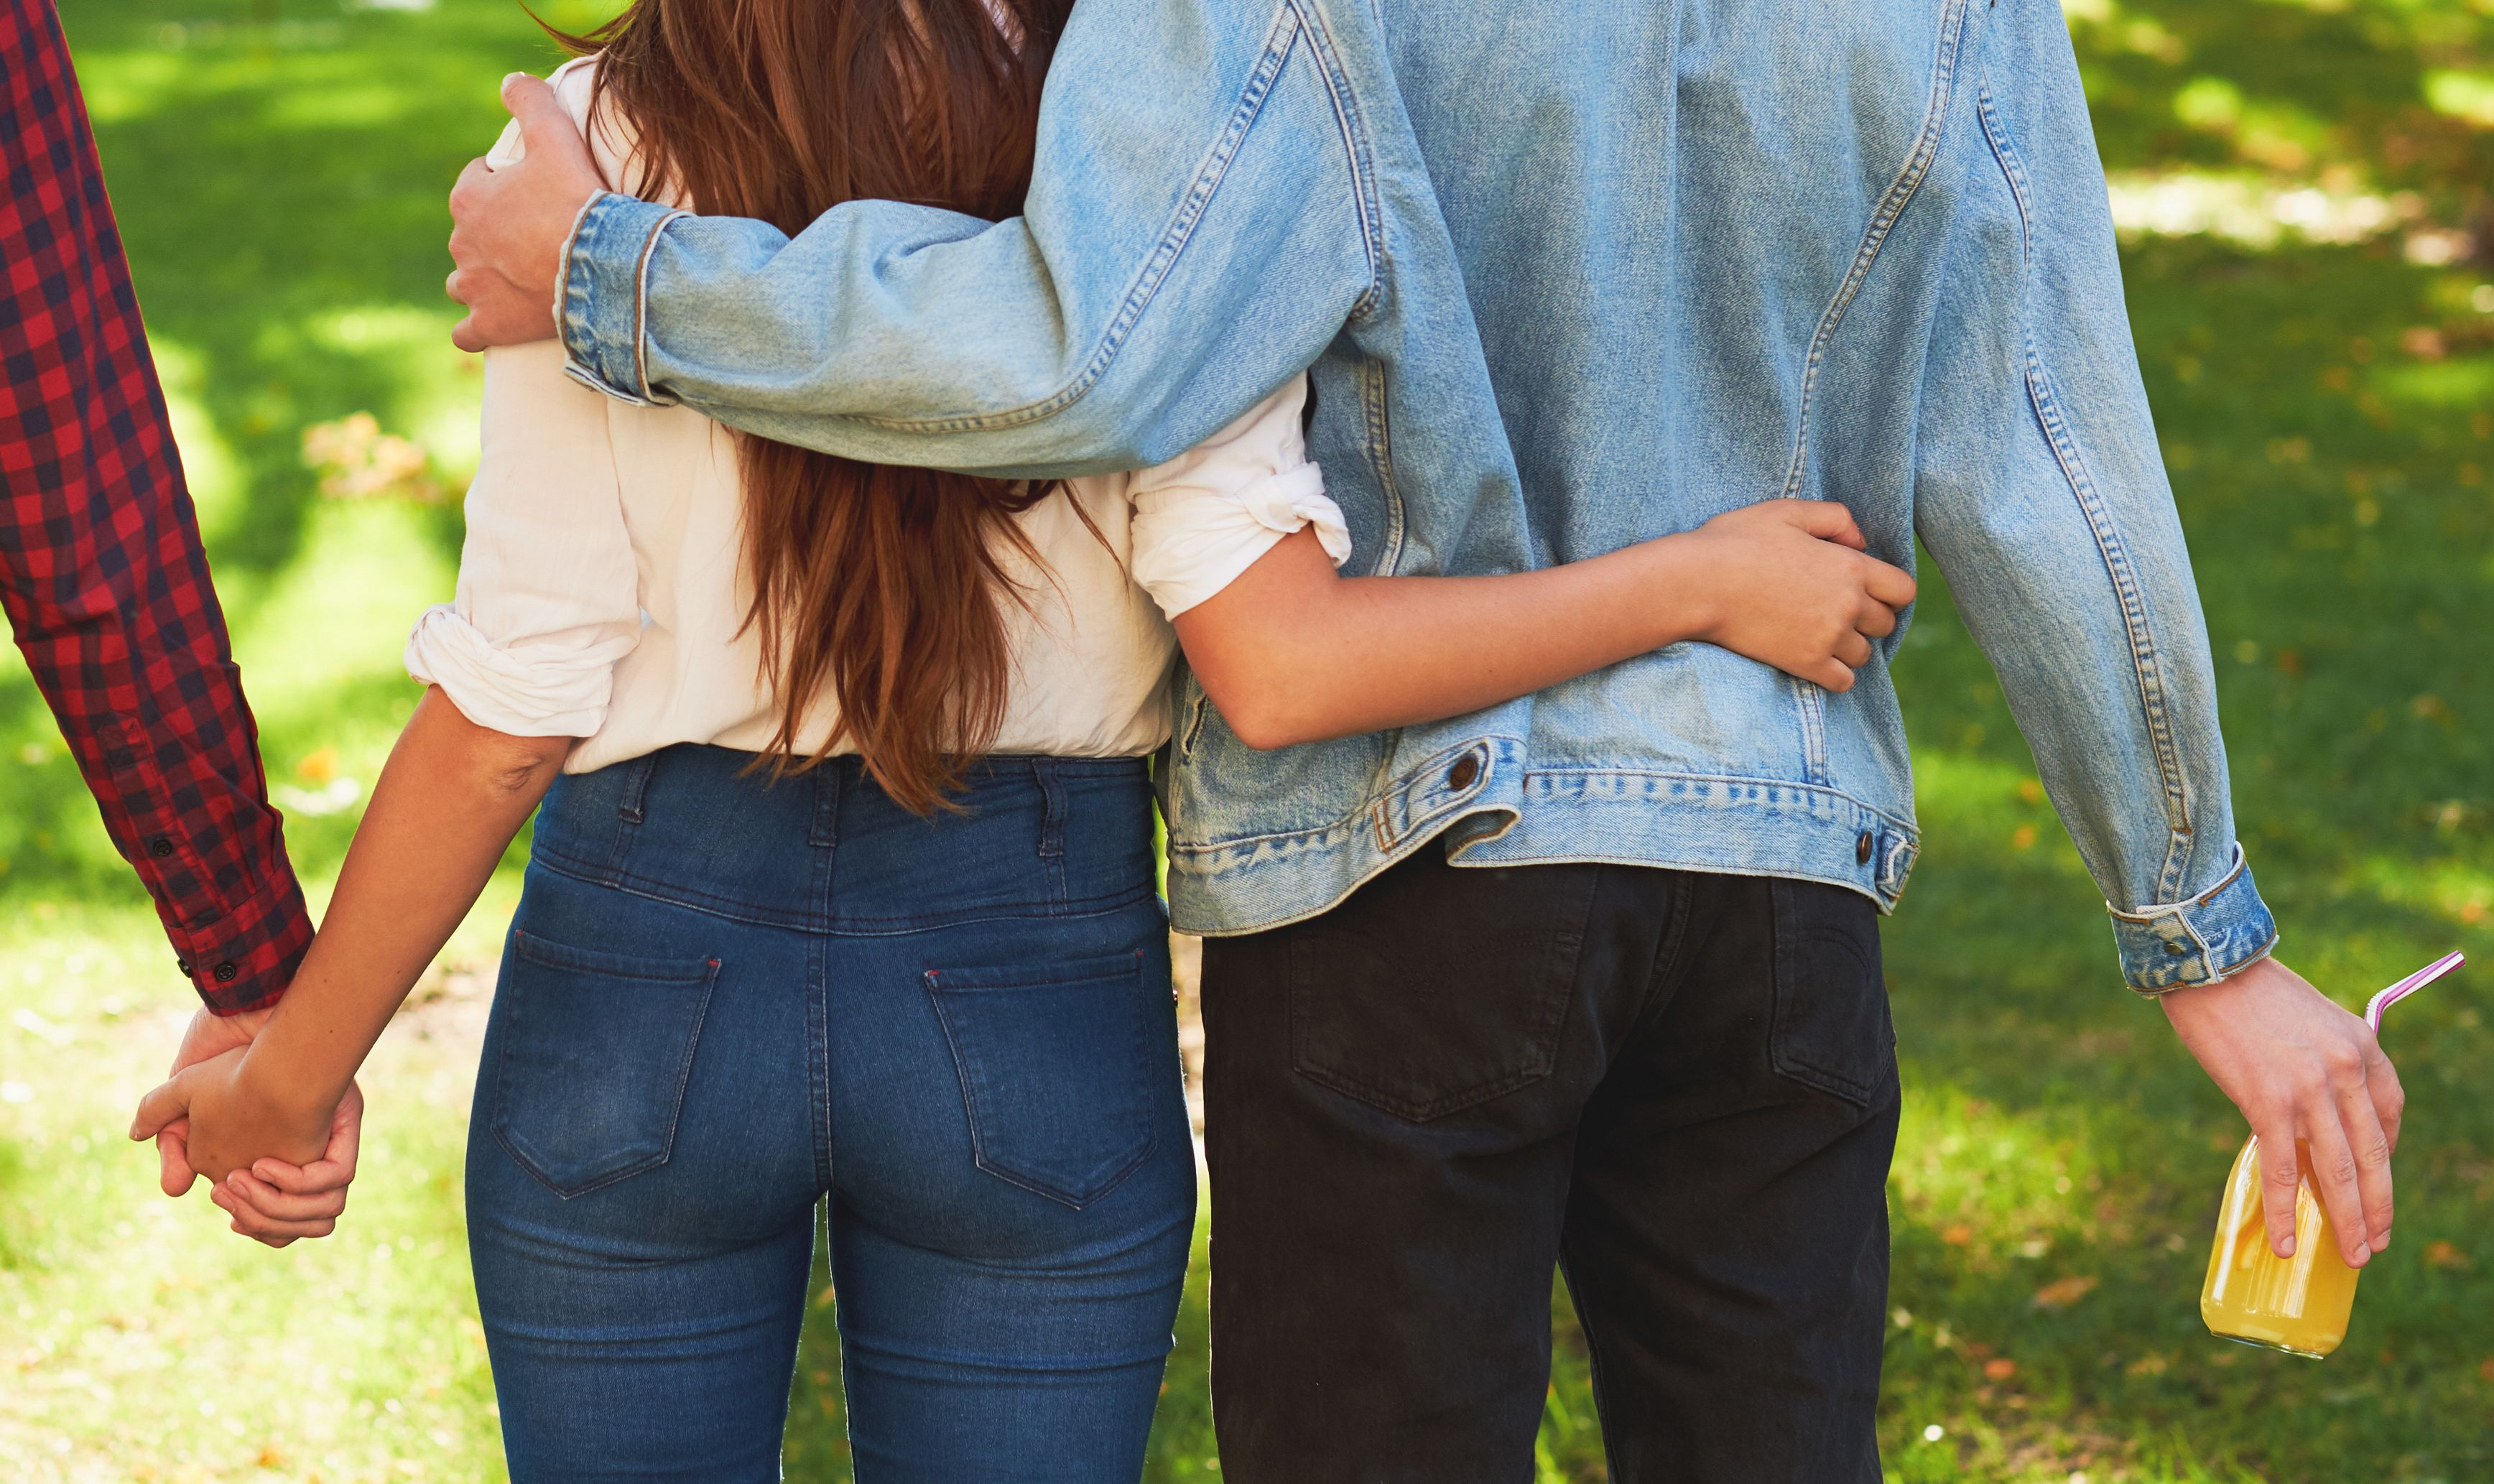 6 Questions That Reveal If You Should Try Polyamory